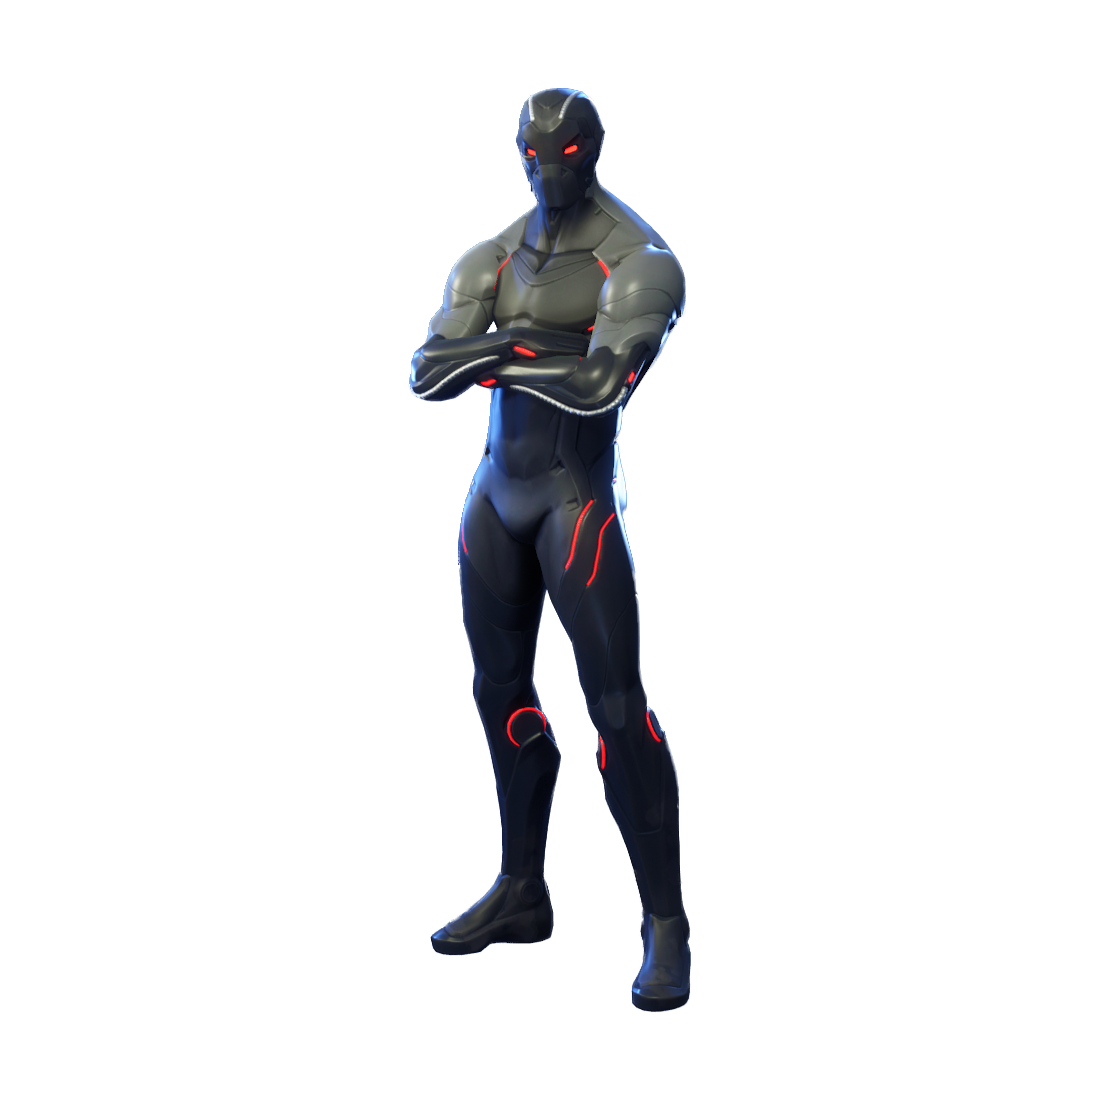 Fnbr Co Fortnite Cosmetics